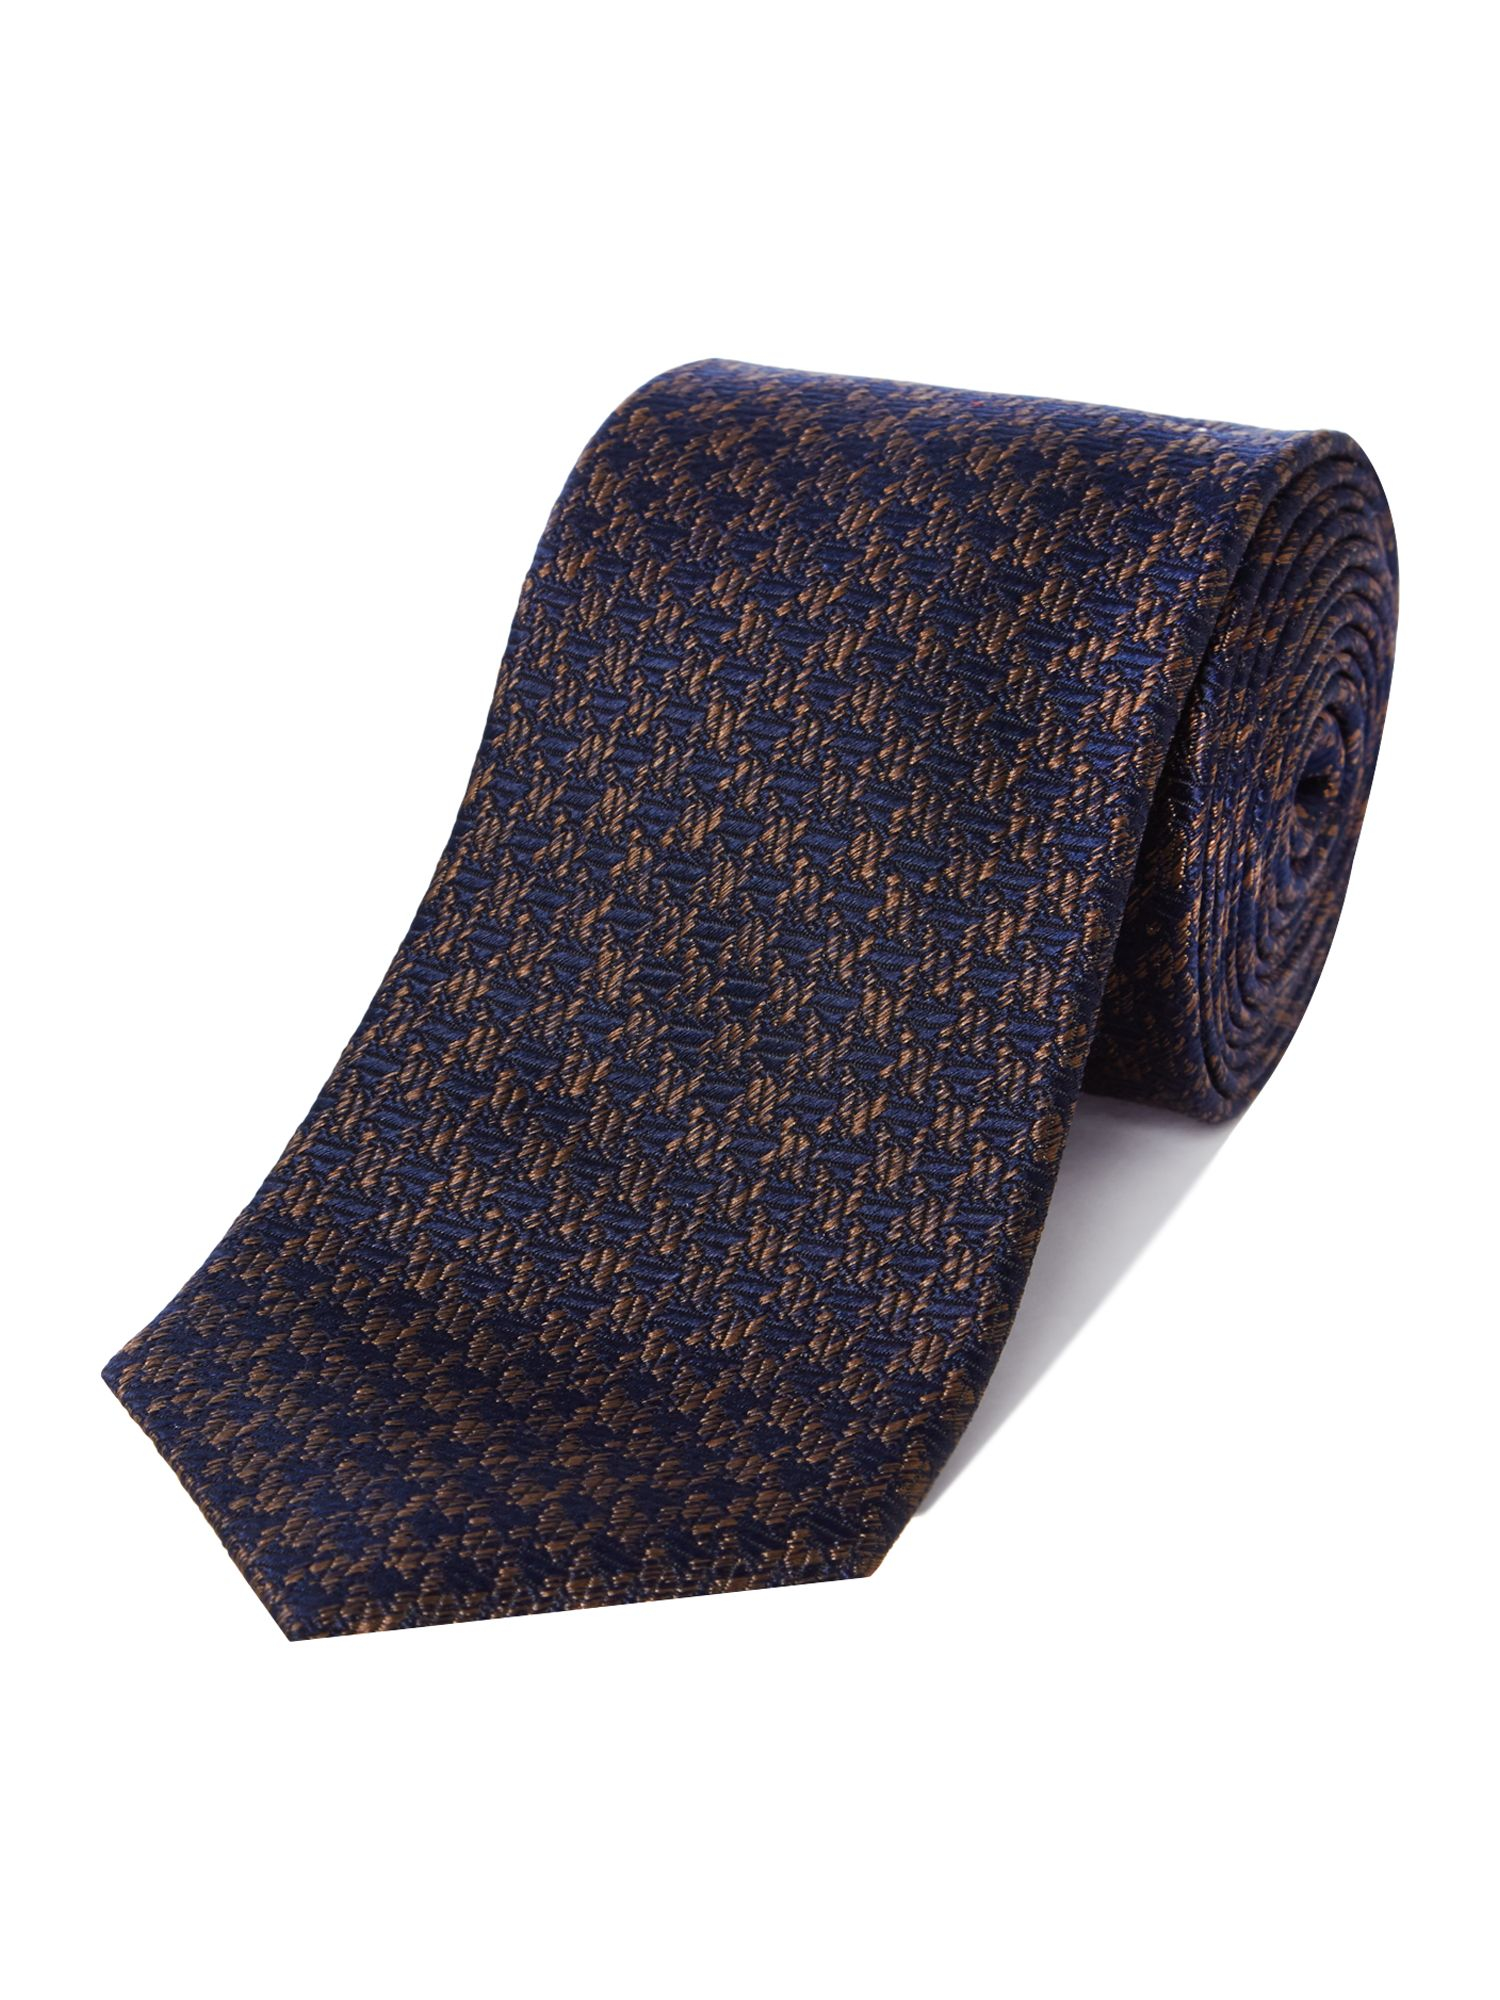 6ccca1354d9d41 Ted Baker Atacus Textured Tie in Blue for Men - Lyst